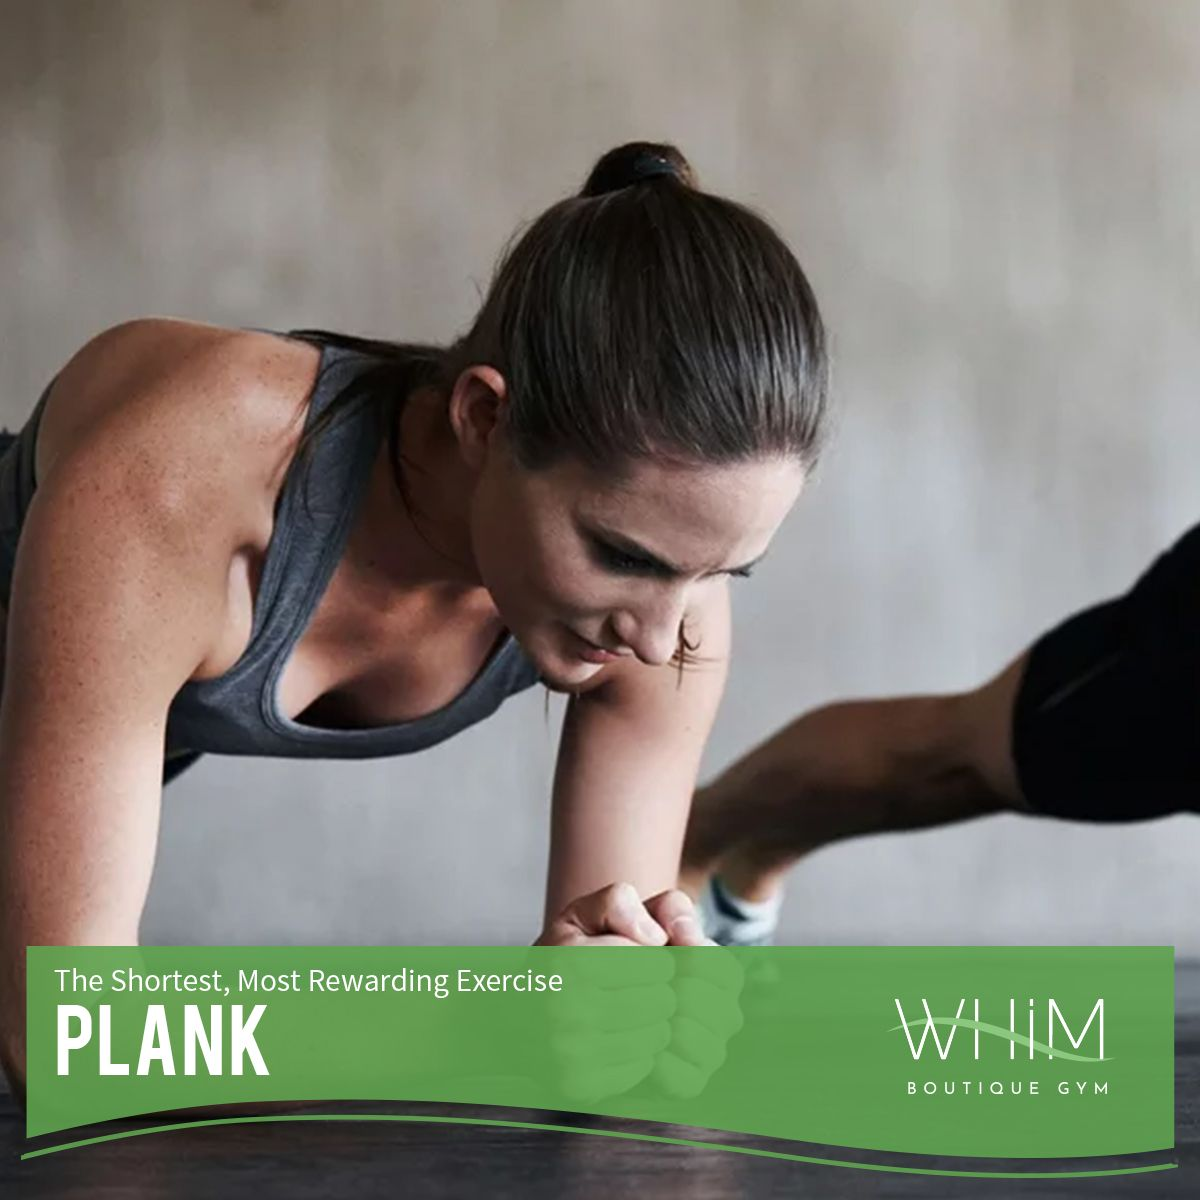 whimgym hashtag on Twitter